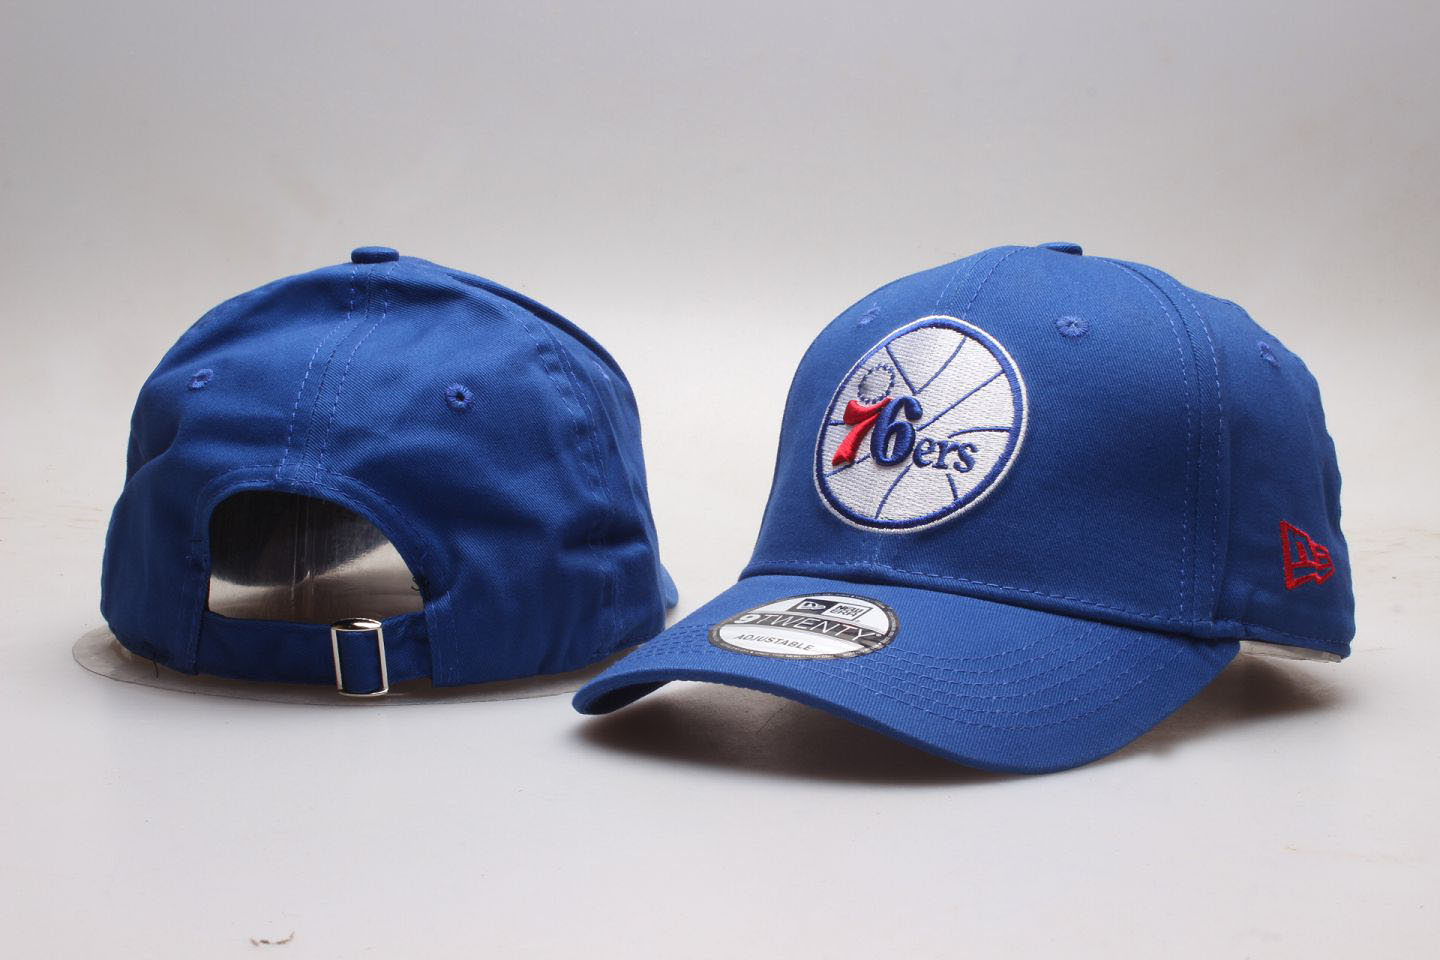 76ers Team Logo Blue Peaked Adjustable Hat YP